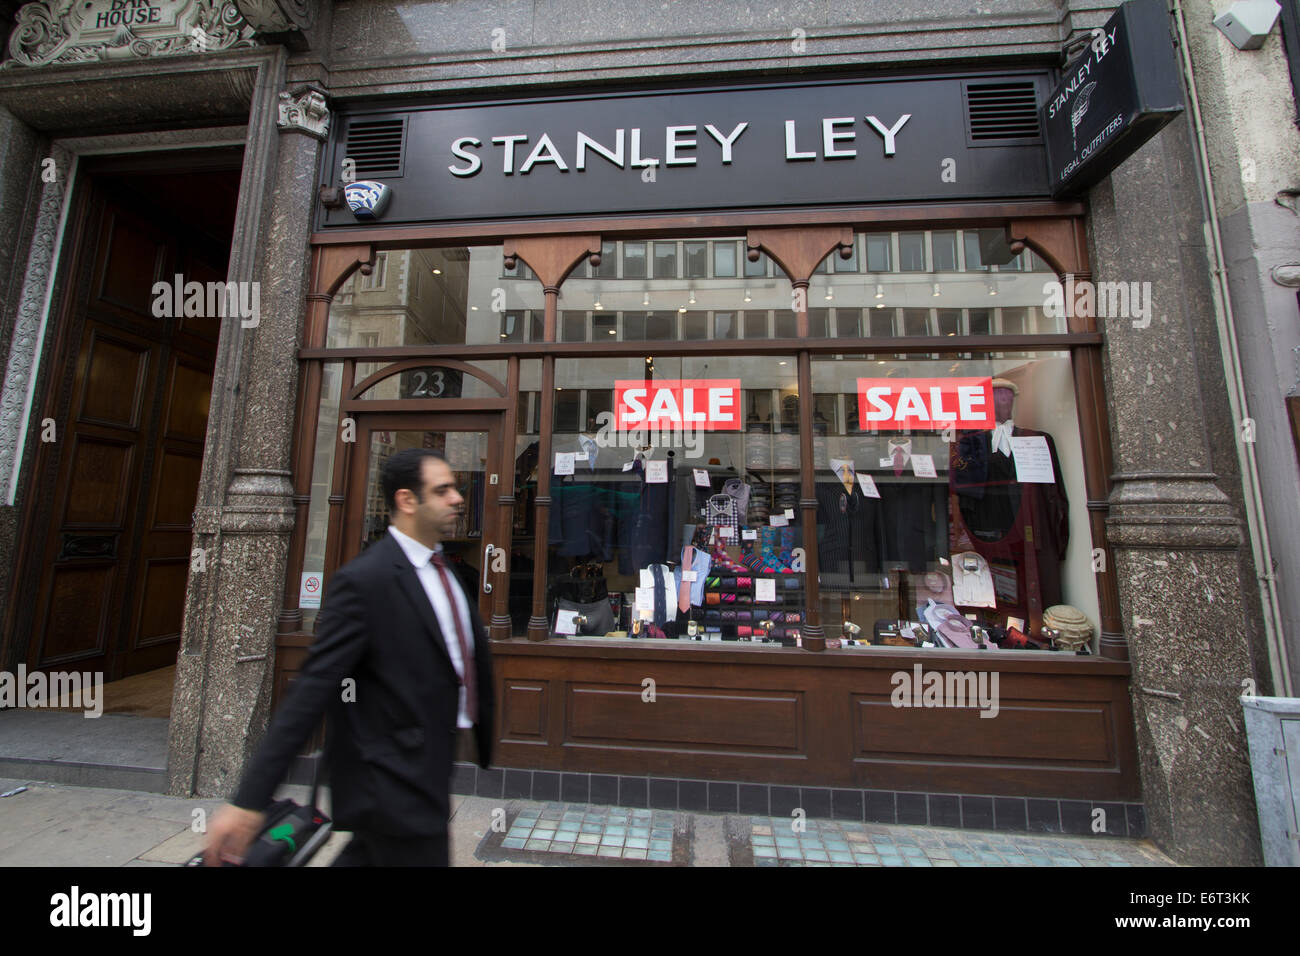 Stanley Ley Legal outfitters - Stock Image